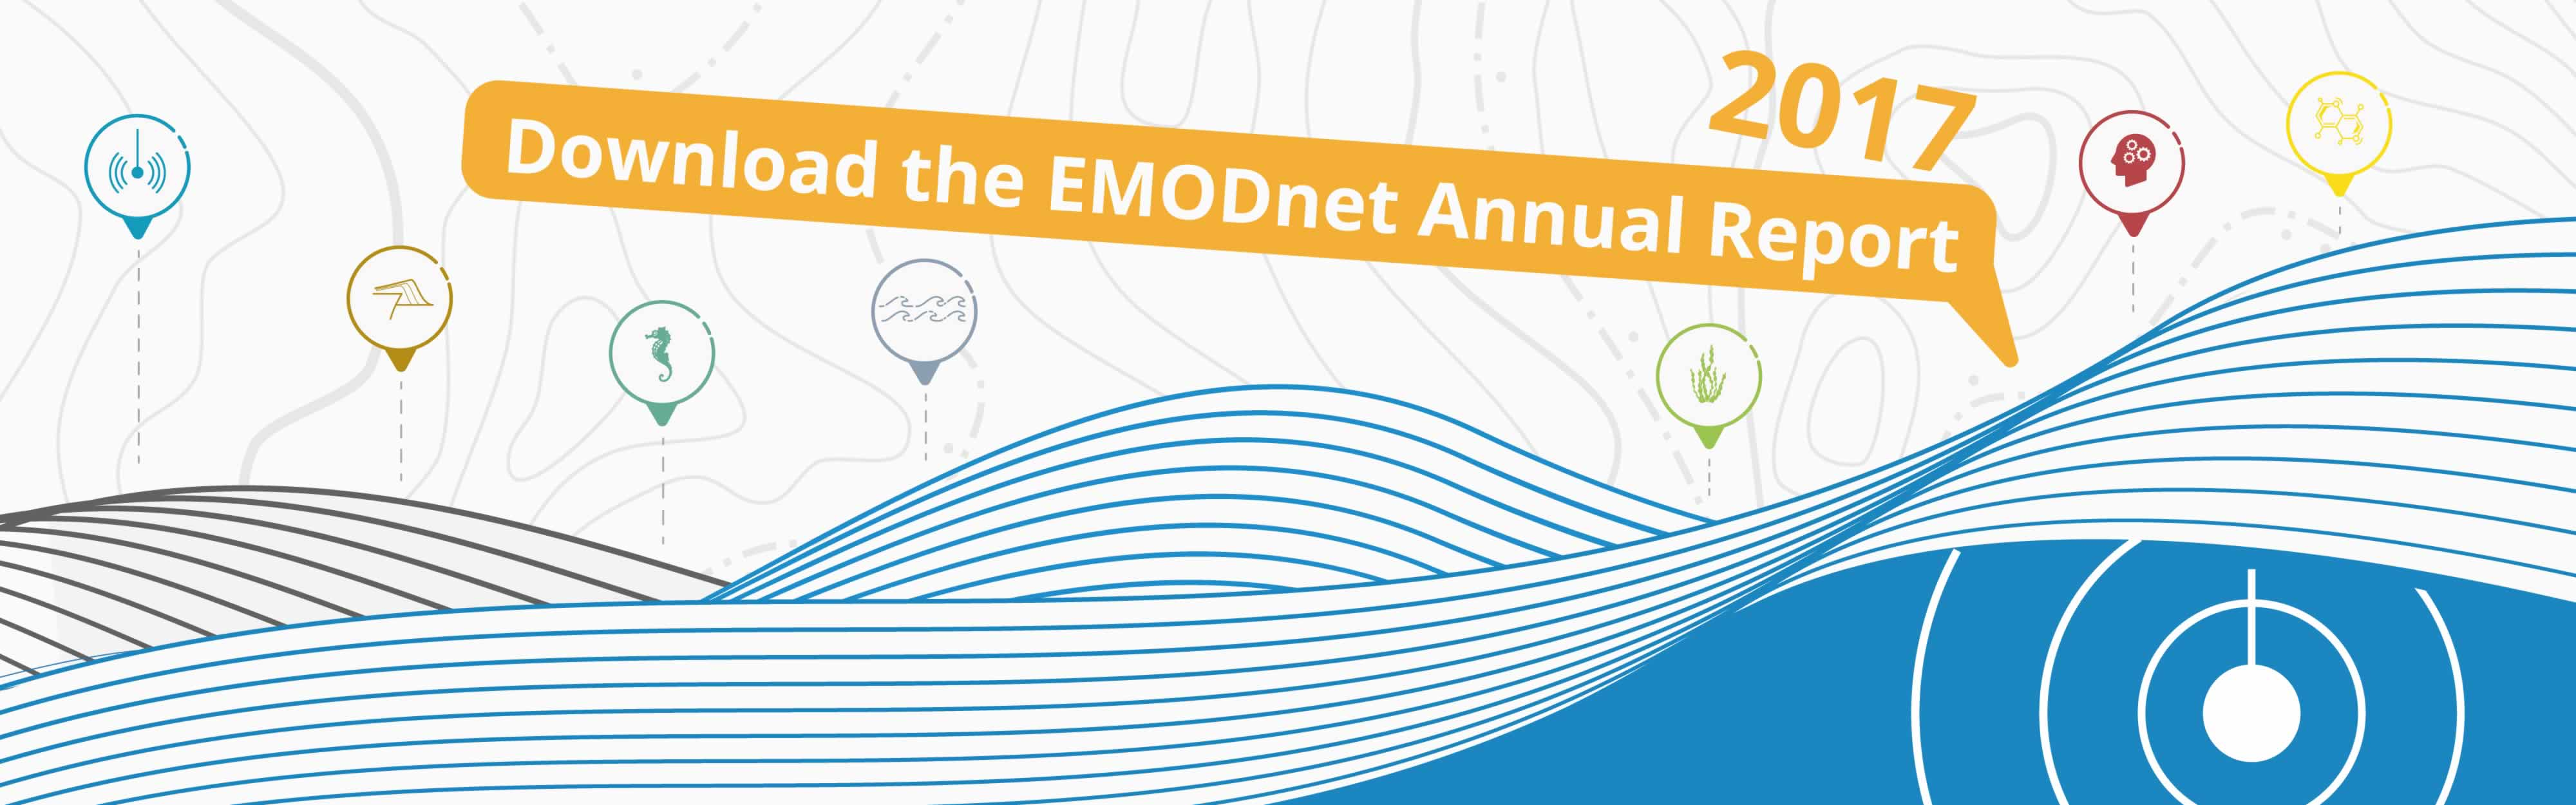 Emodnet Annual Report 2017